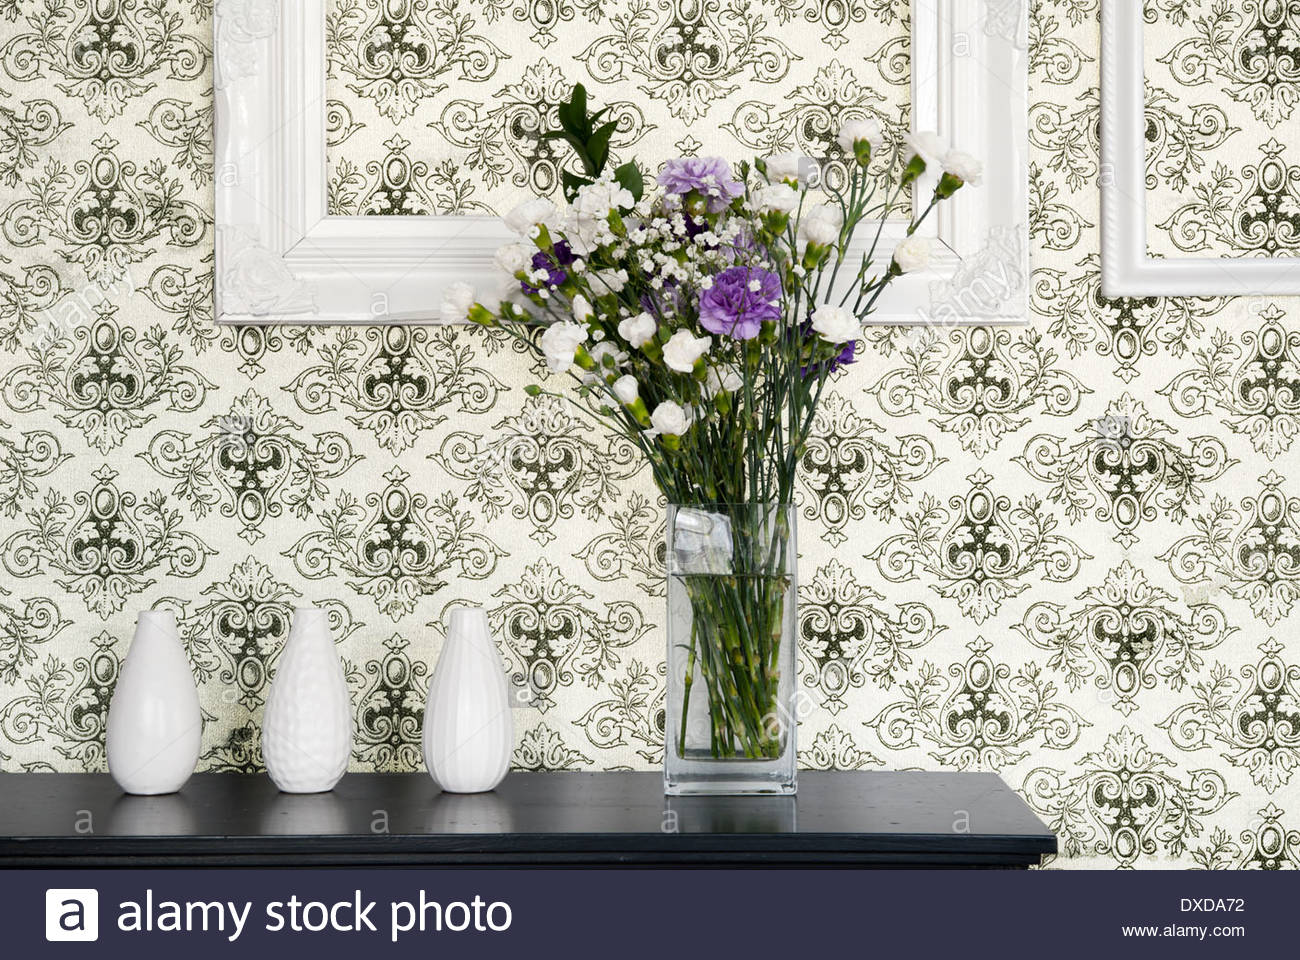 Frames With Flowers Stock Photos & Frames With Flowers Stock Images ...